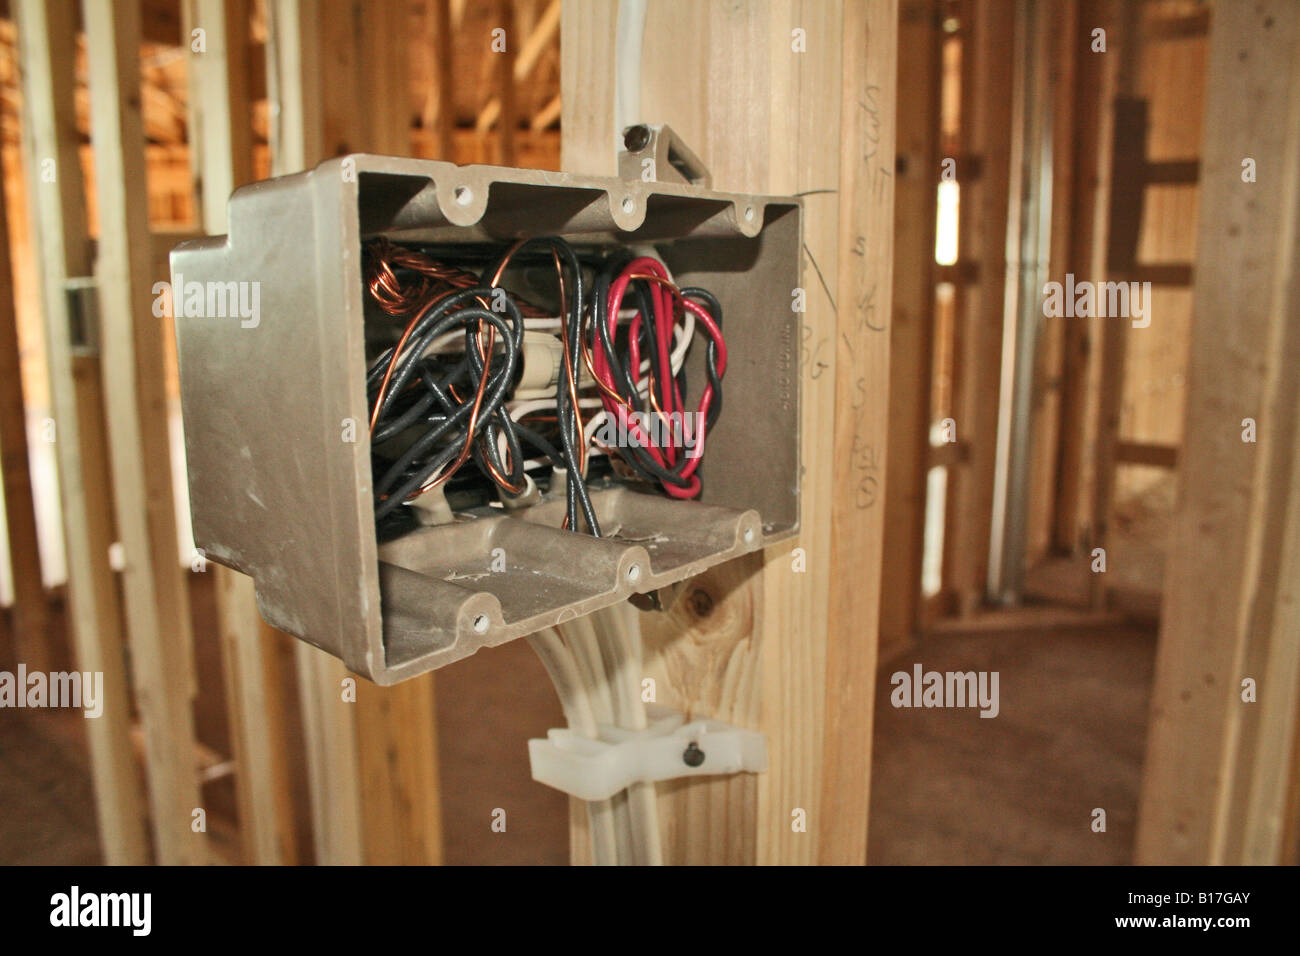 hight resolution of electrical outlet wiring in new home construction